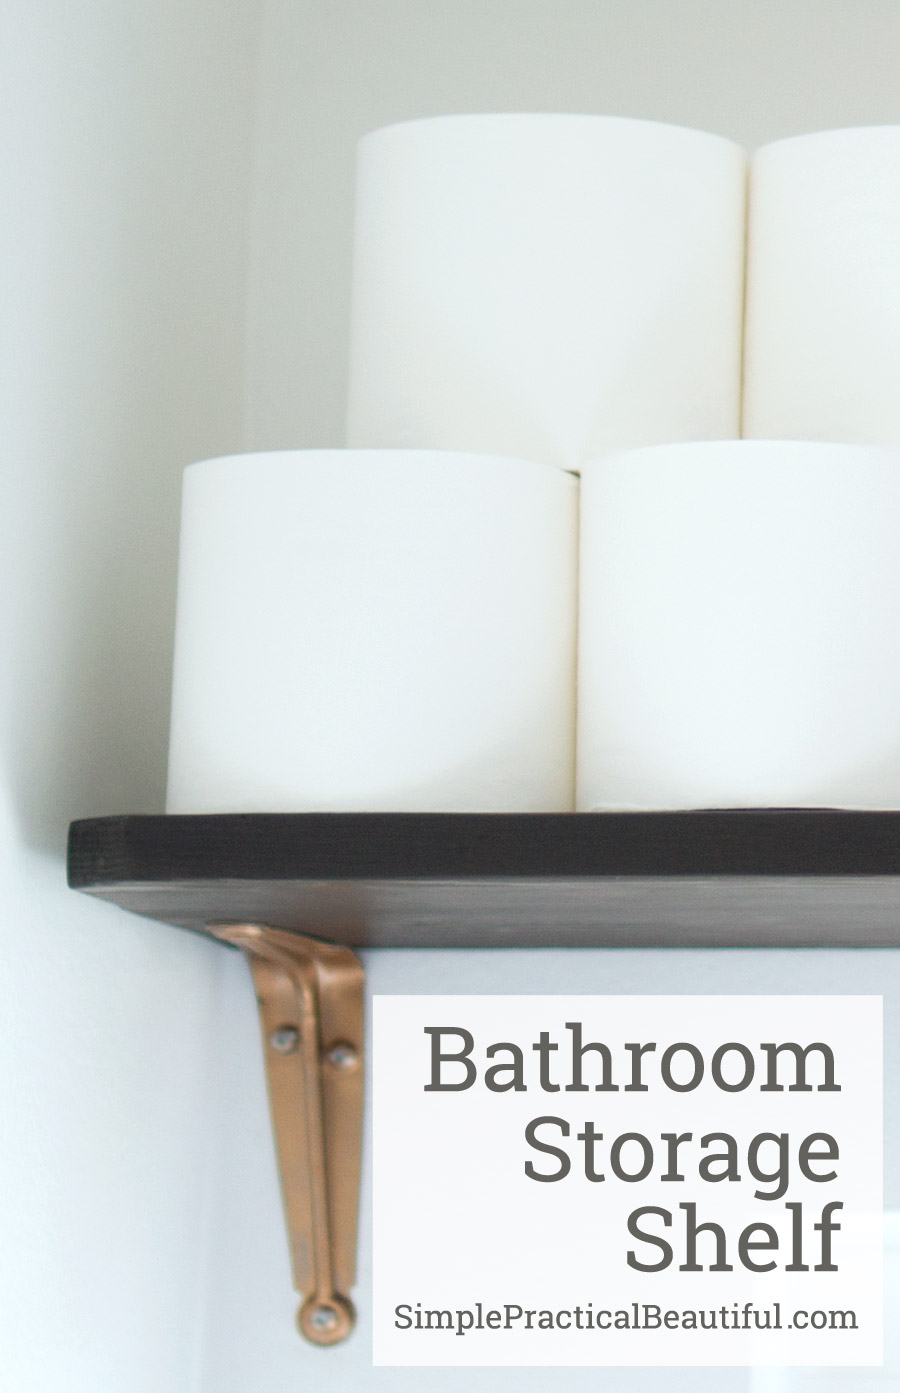 Install a storage shelf in your bathroom to keep all those necessity out of the way but within reach